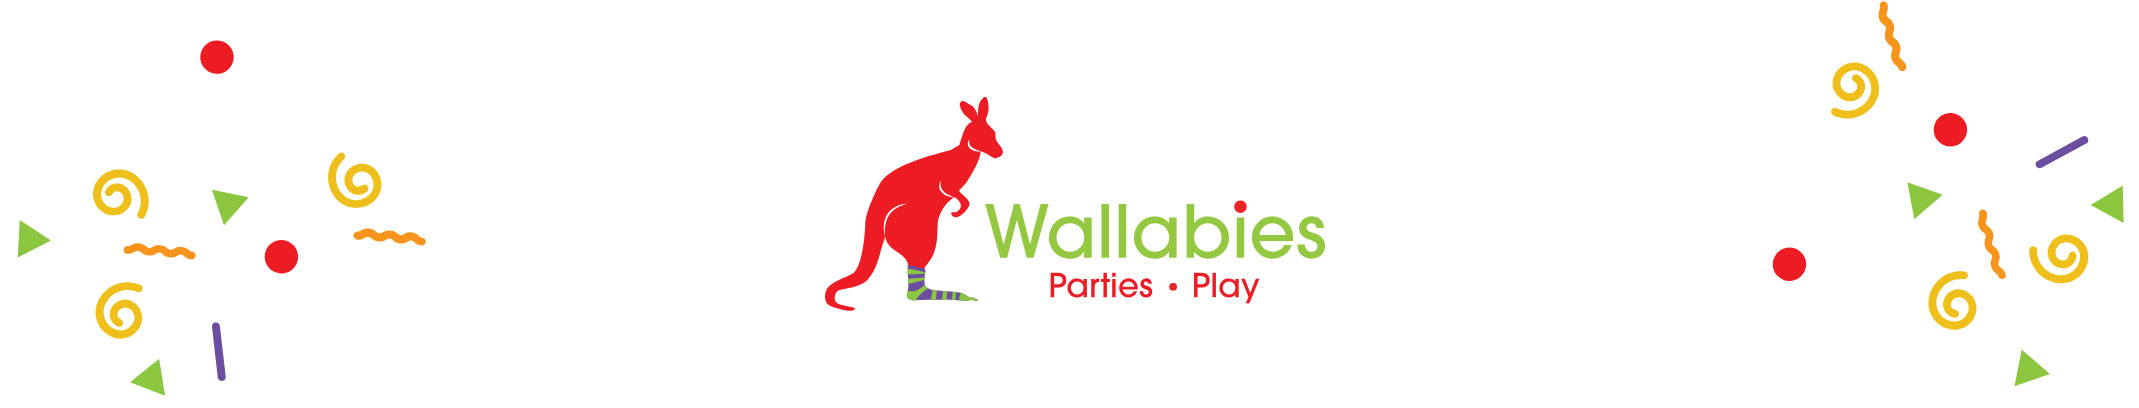 Home Wallabies